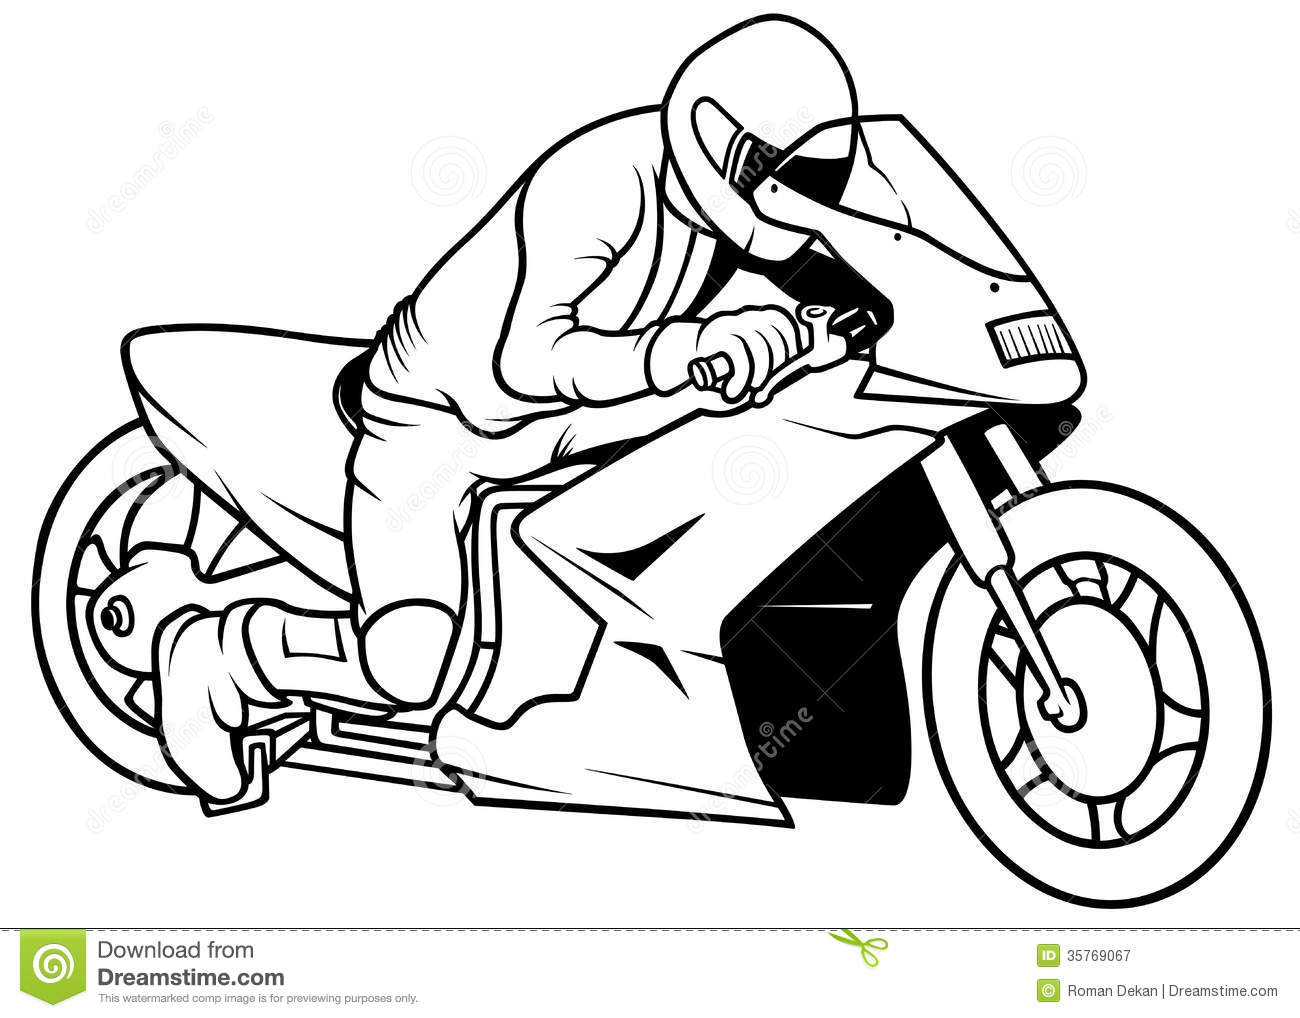 Motorcycle Silhouette Vector At Getdrawings Com Free For Personal